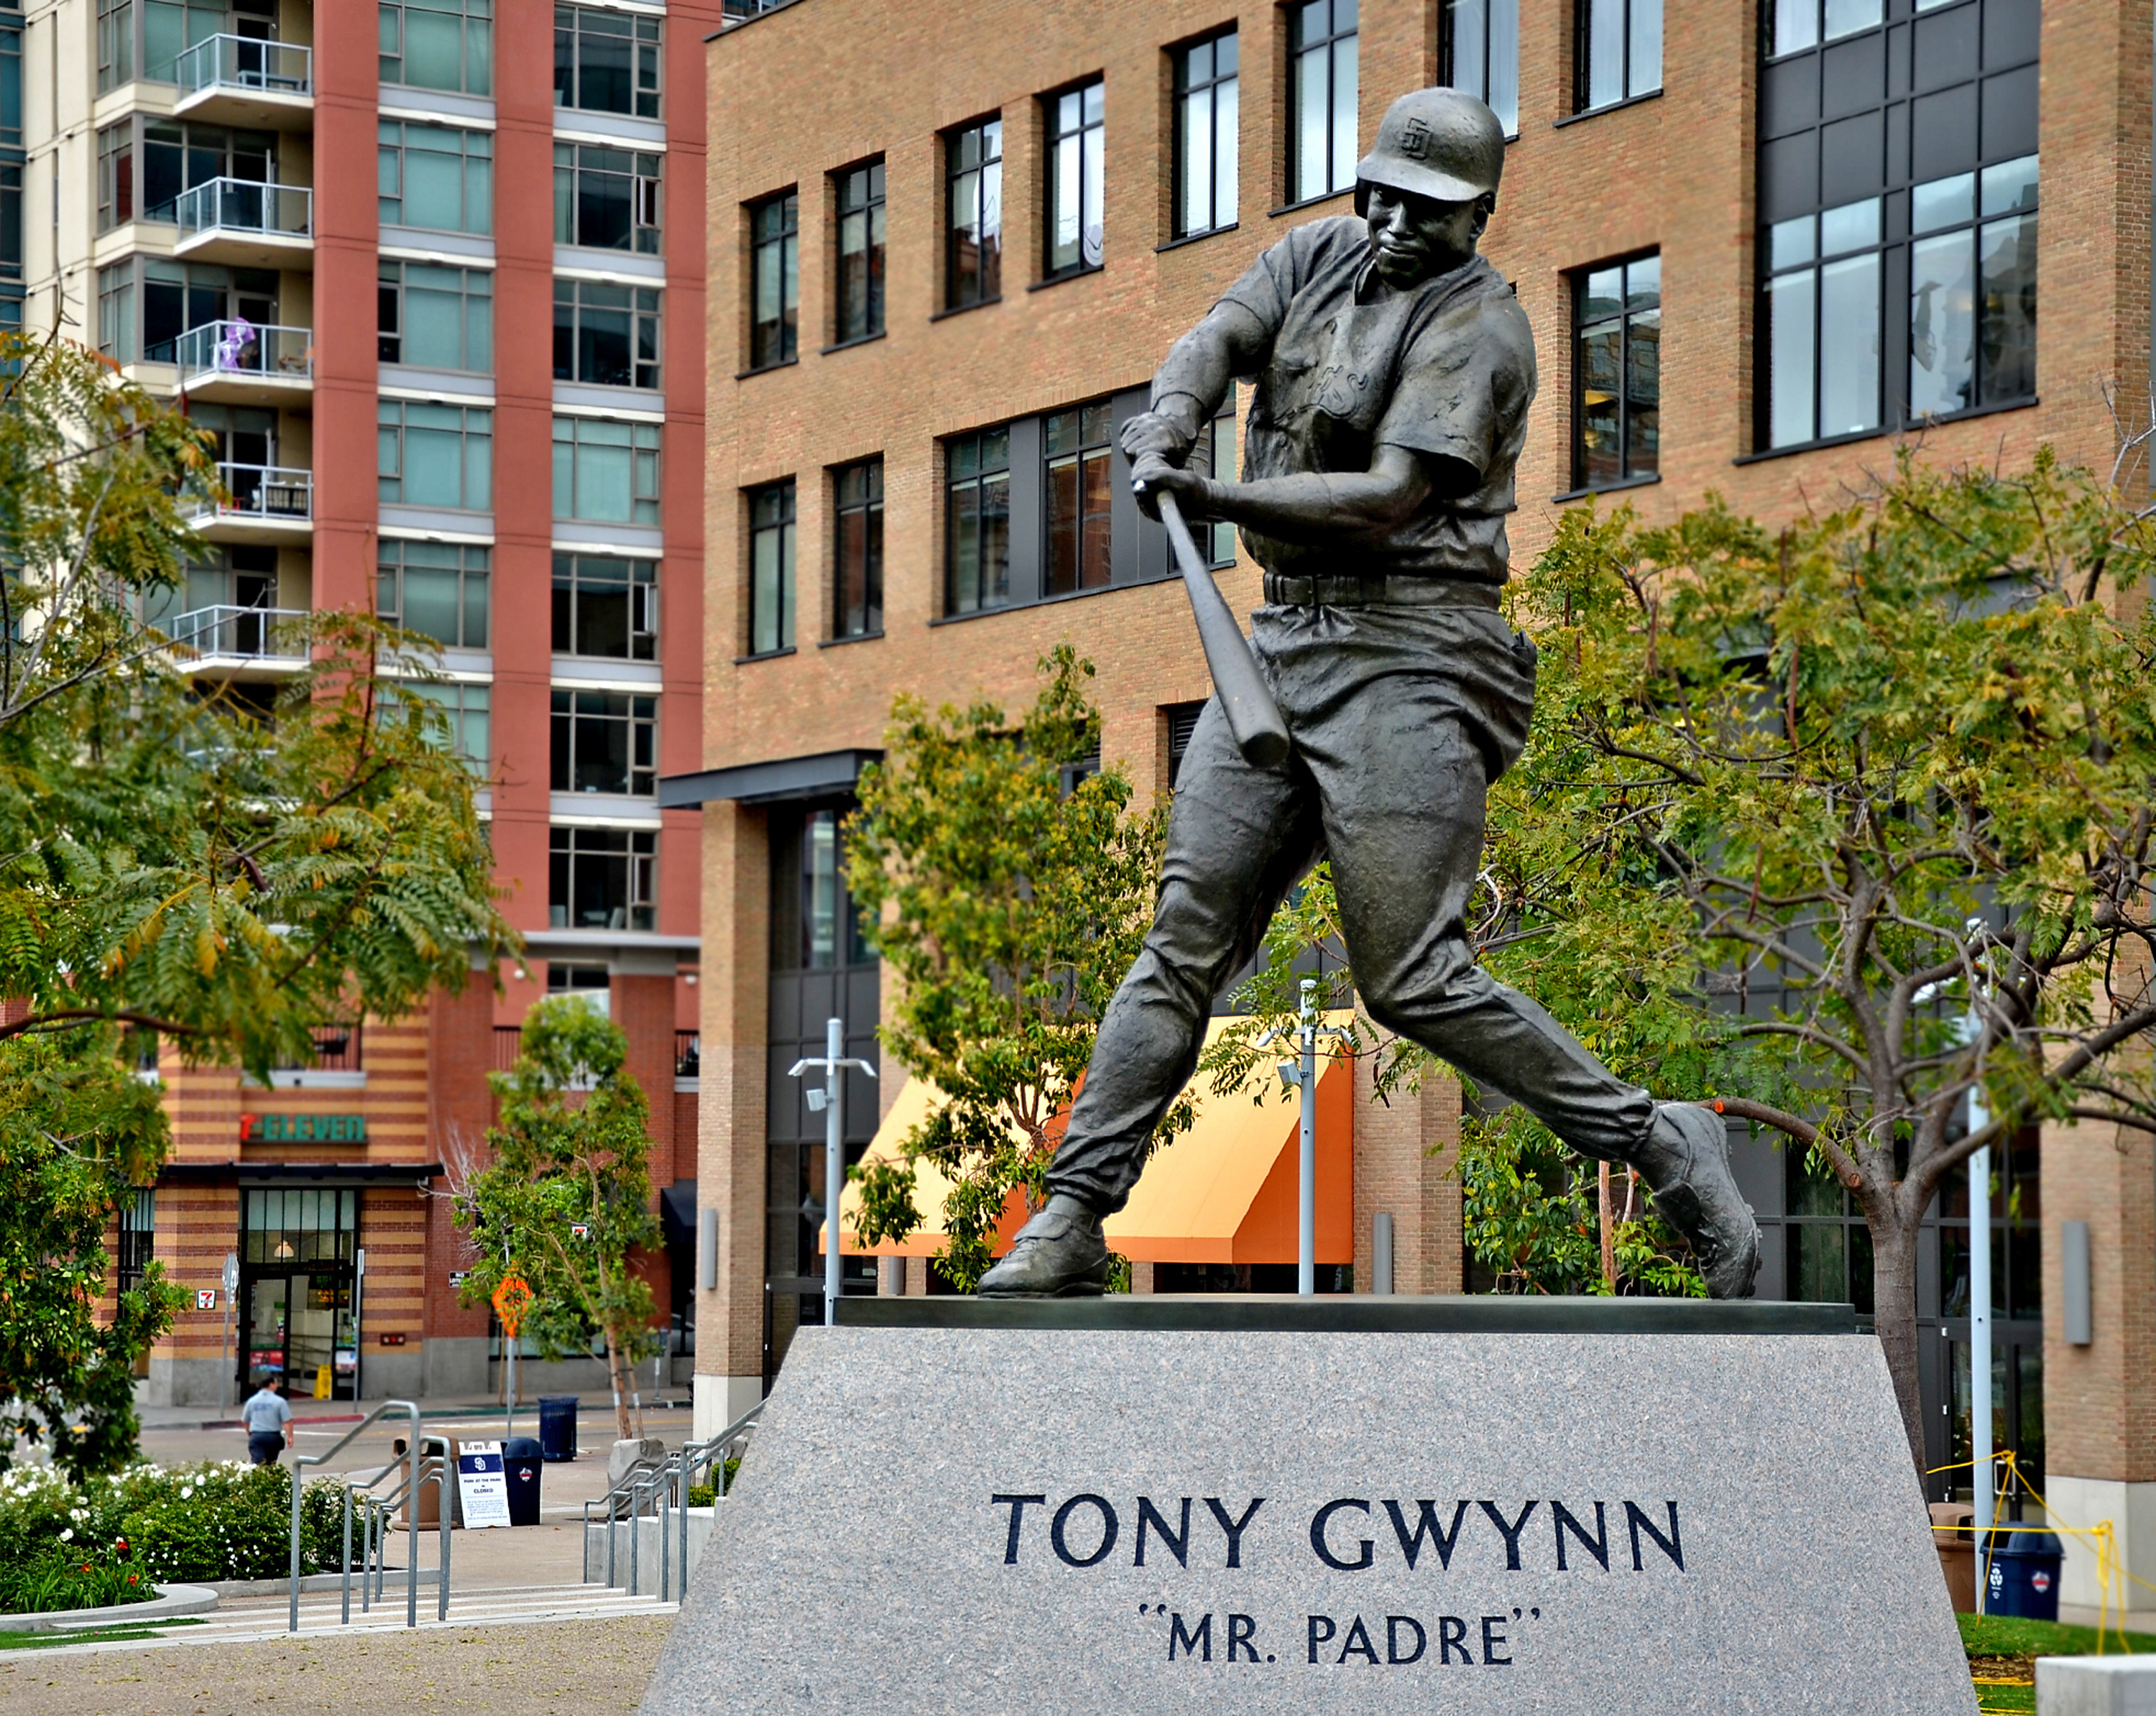 Longtime Padre Tony Gwynn is remembered with a statue in San Diego, California. (Christopher Reynolds/Los Angeles Times/MCT)